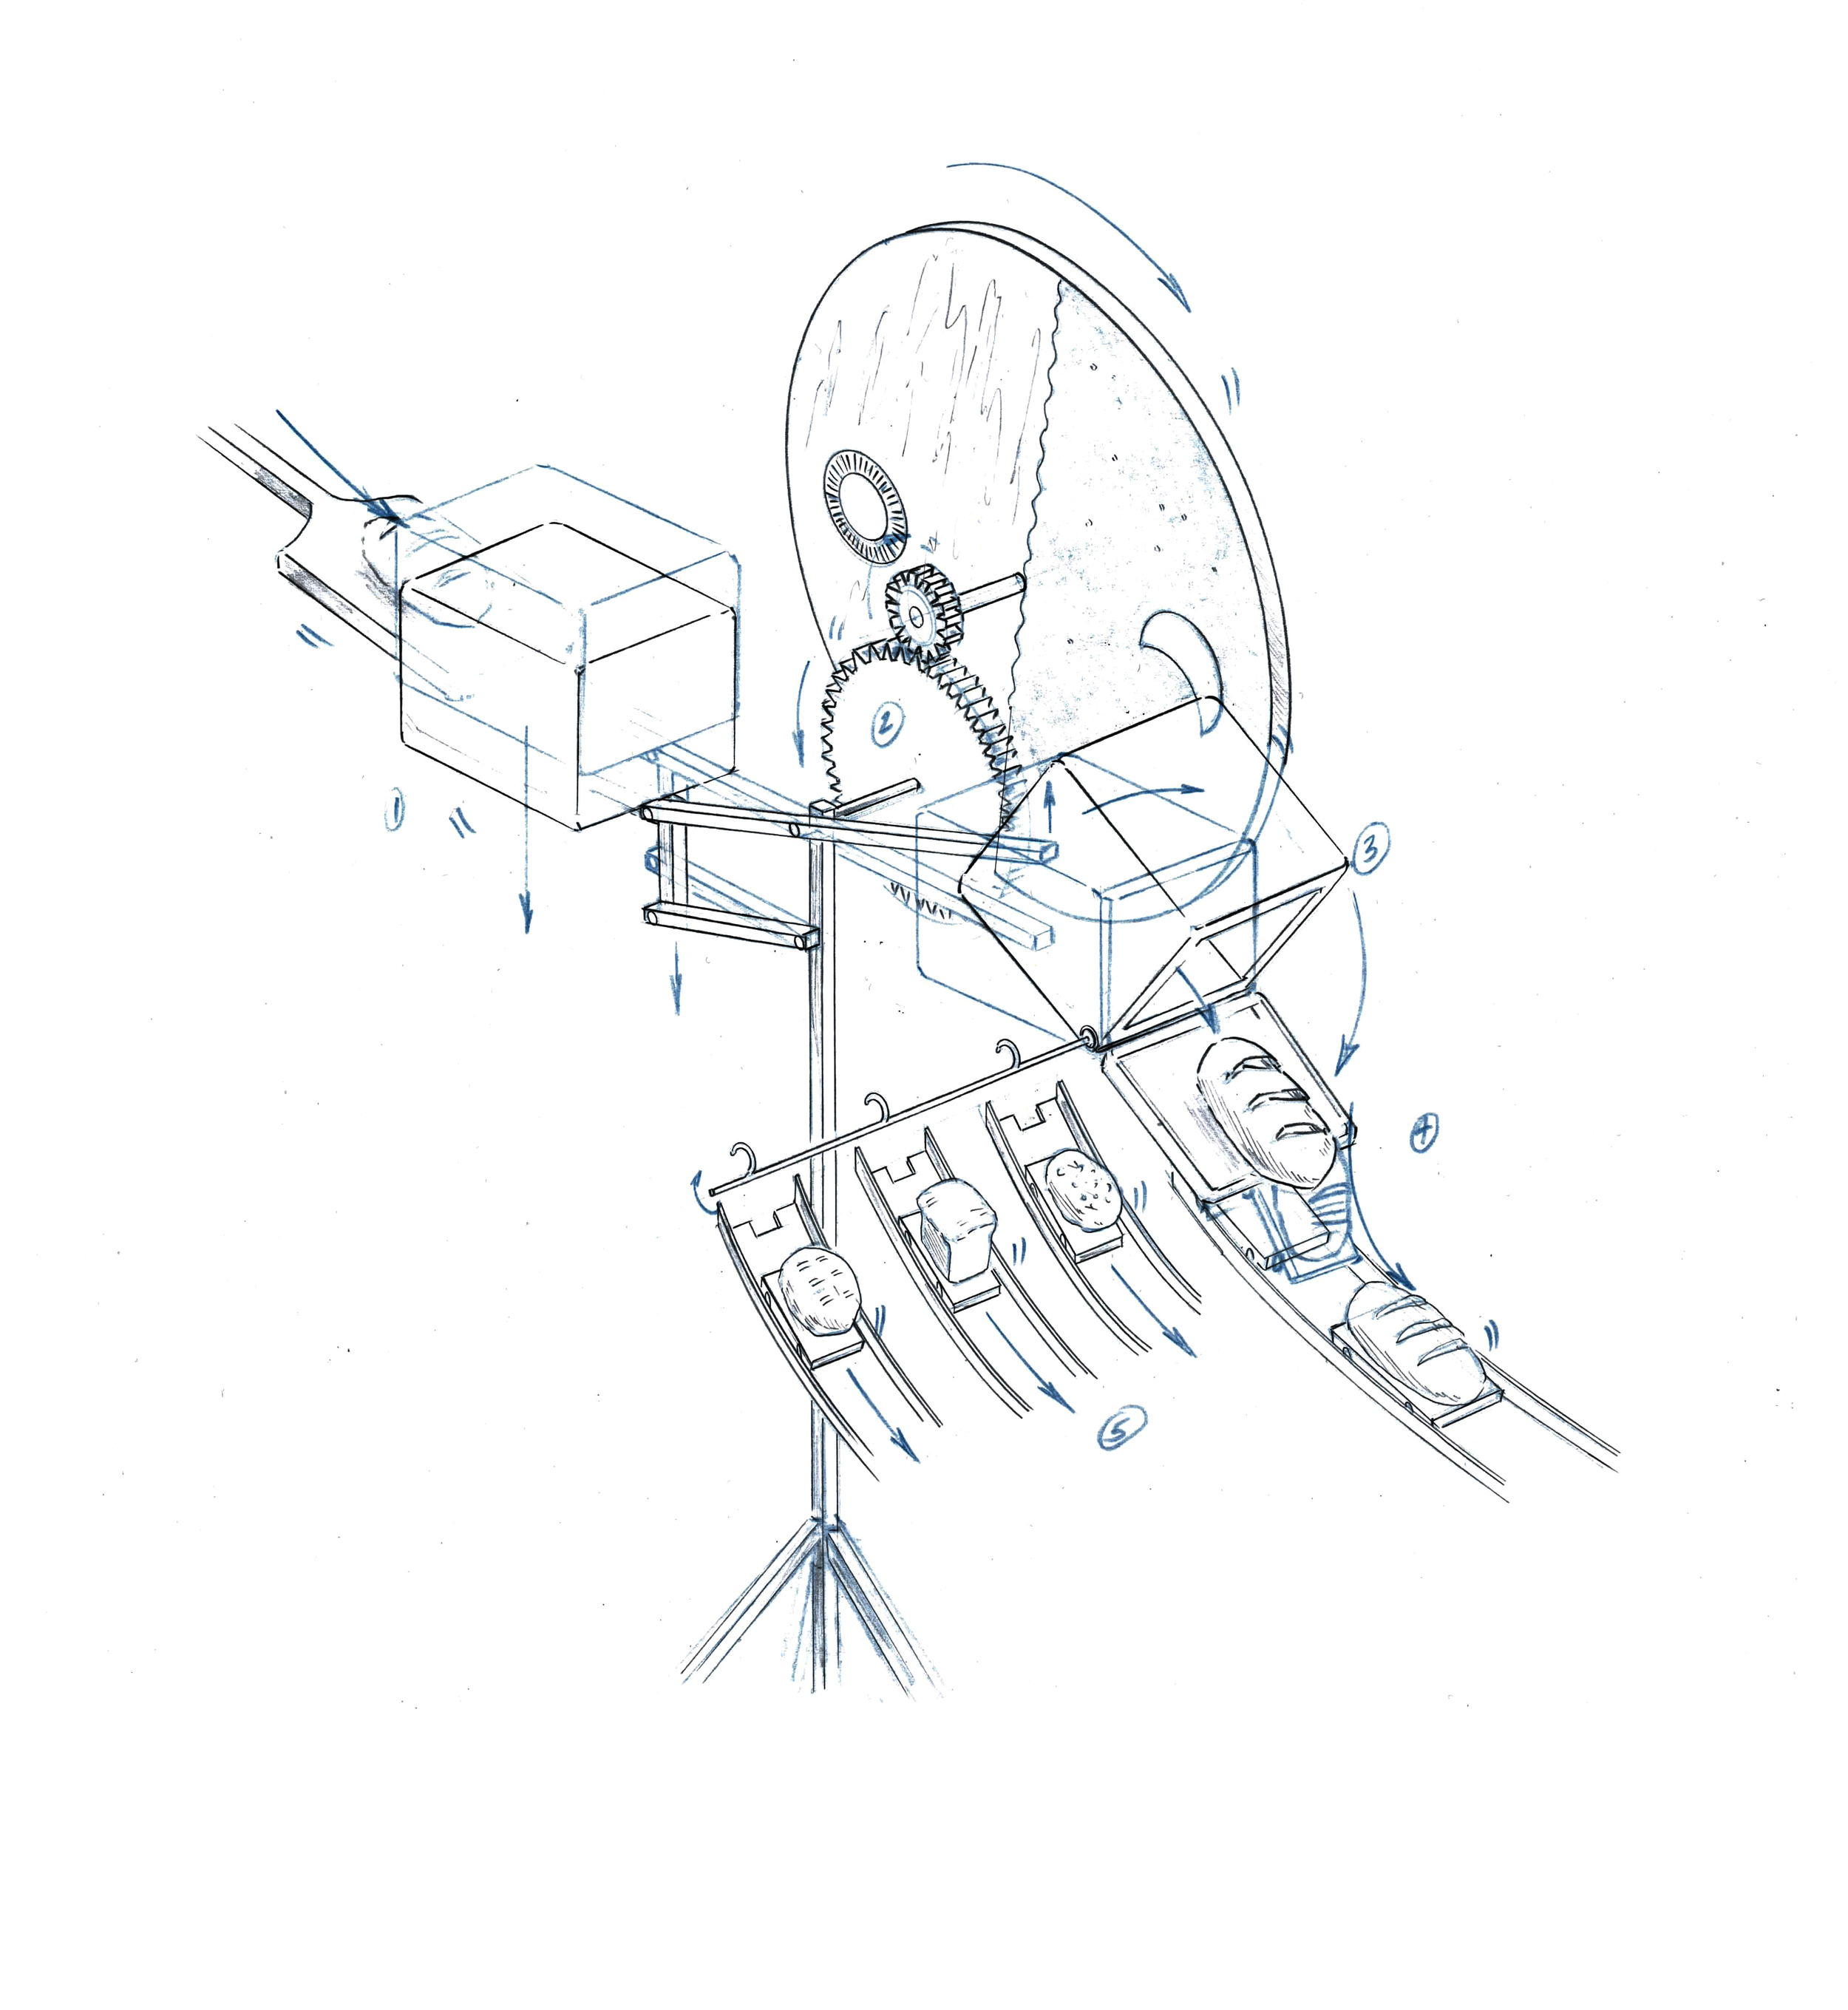 Even once construction  on a set gets underway, drawings can still help the team troubleshoot difficult areas.